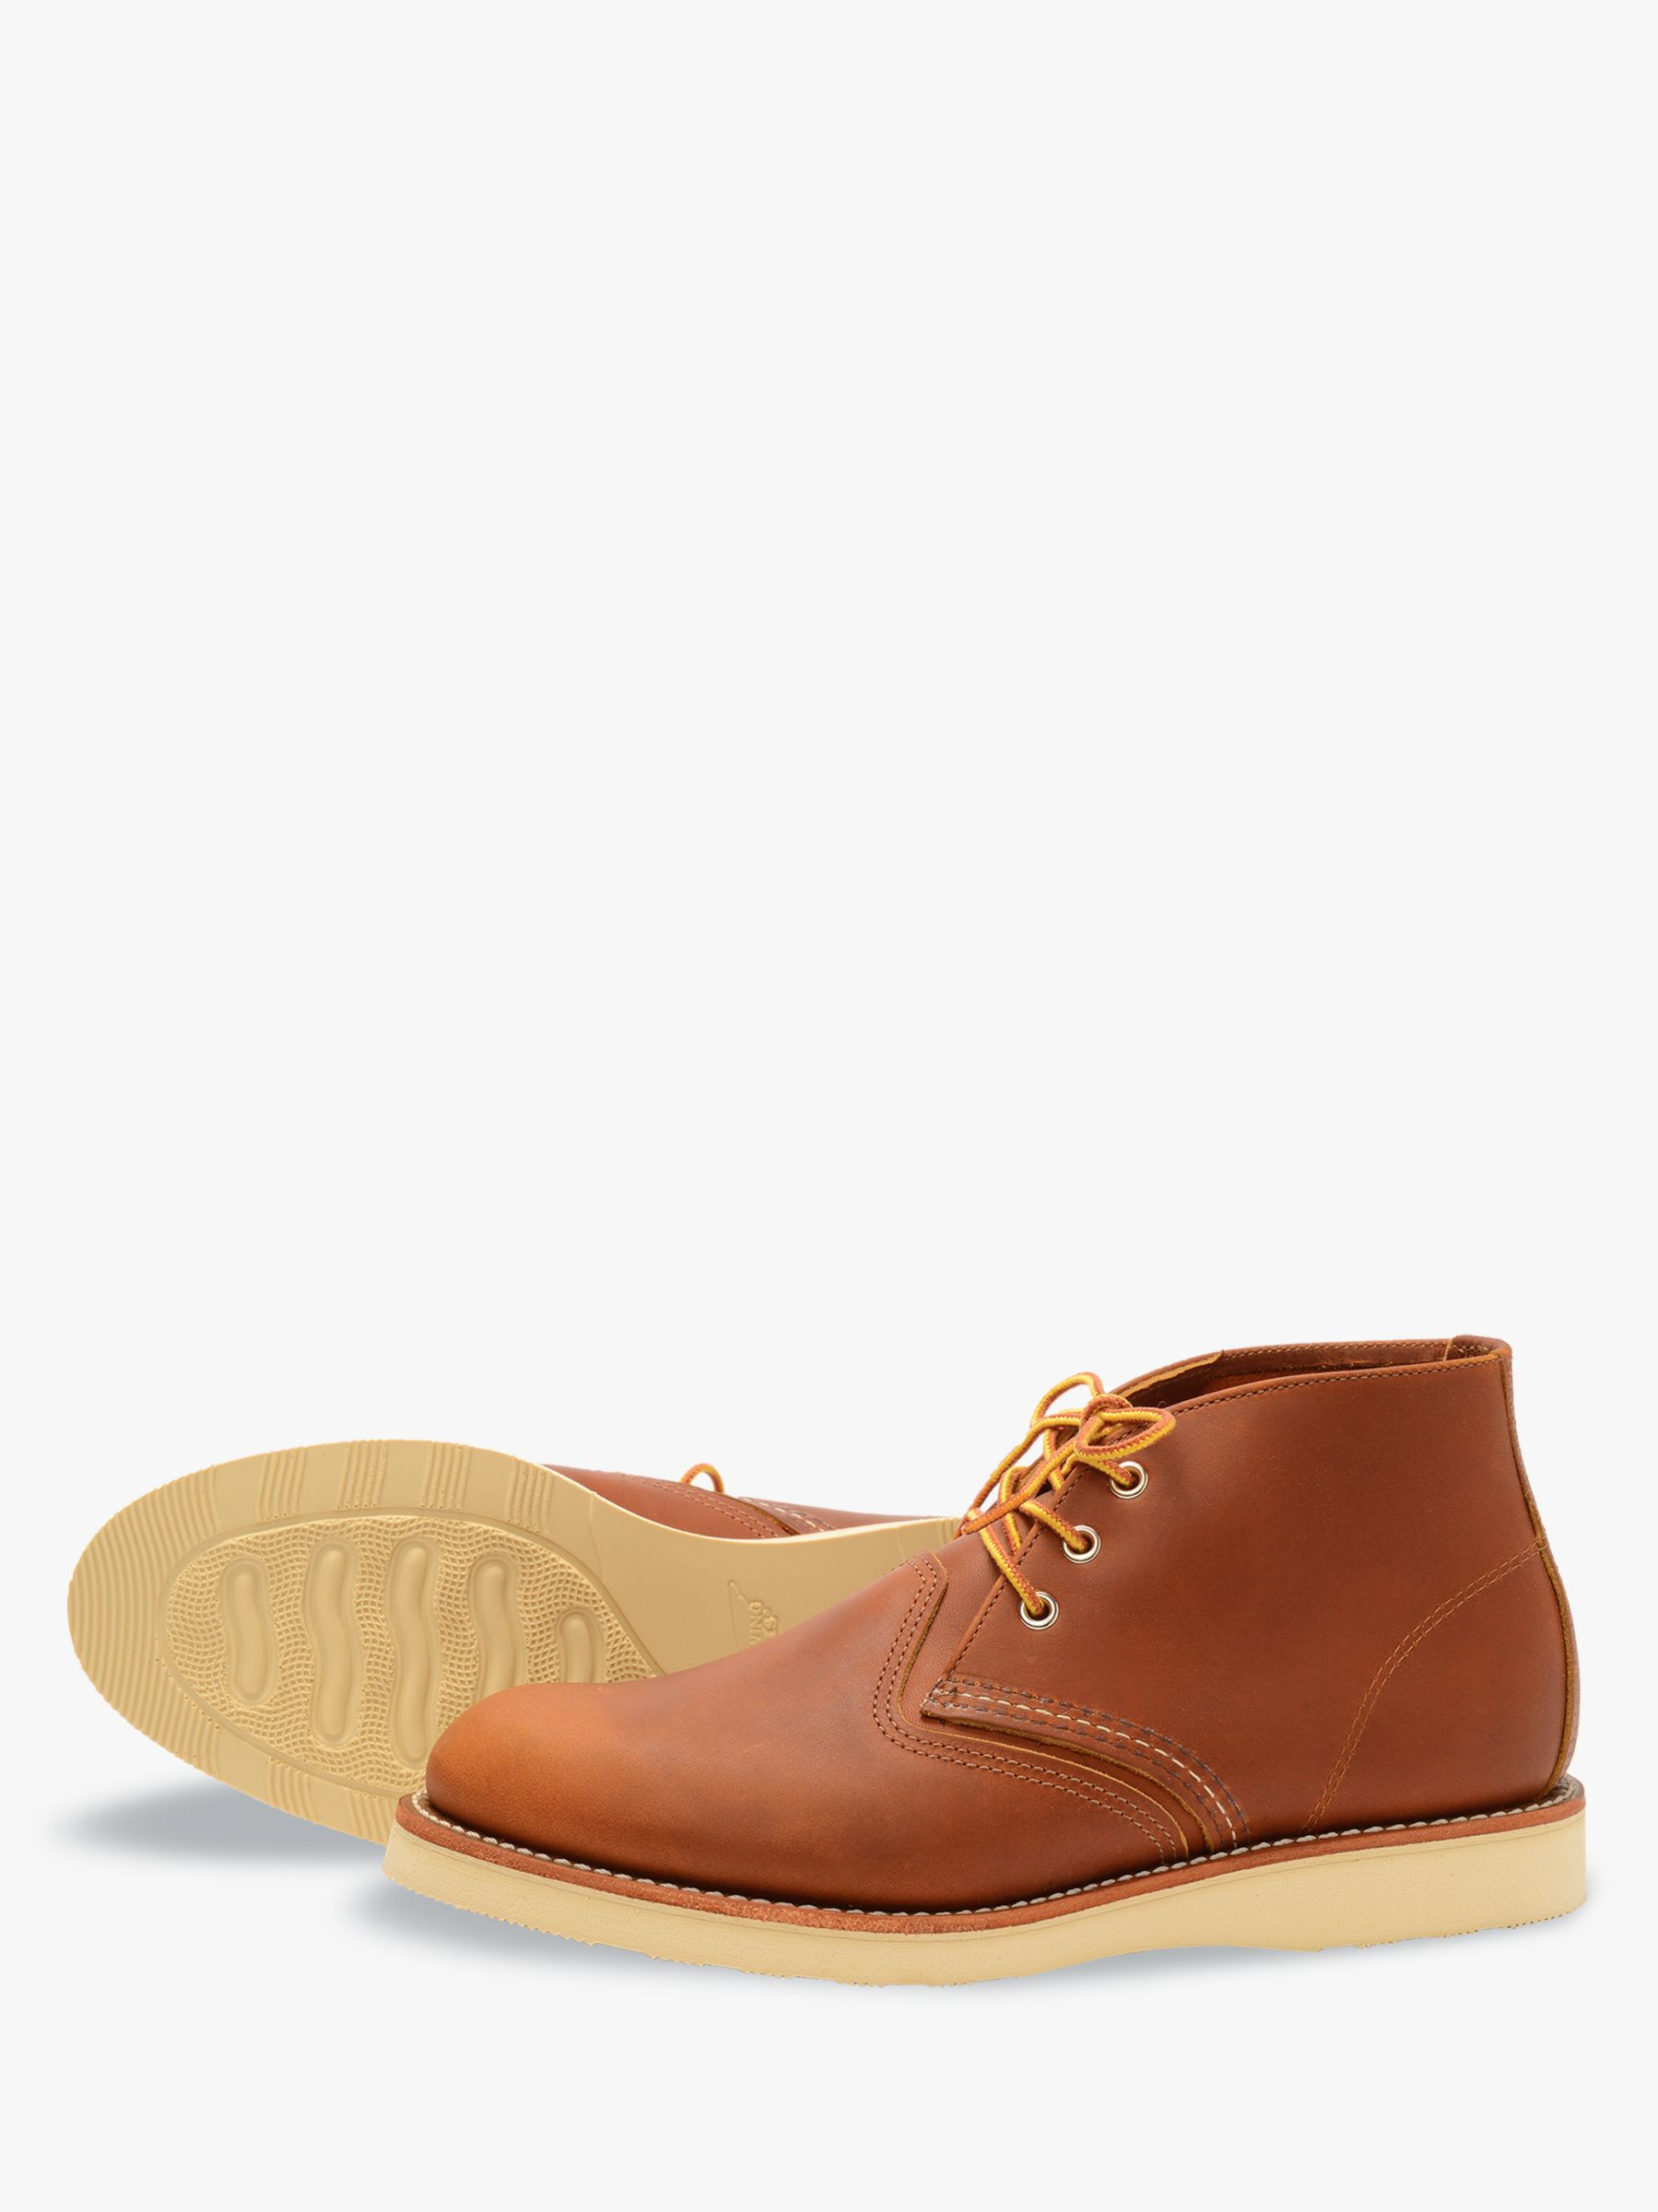 f90d3b2efd8 Red Wing 3140 Work Chukka Boot, Oro-iginal